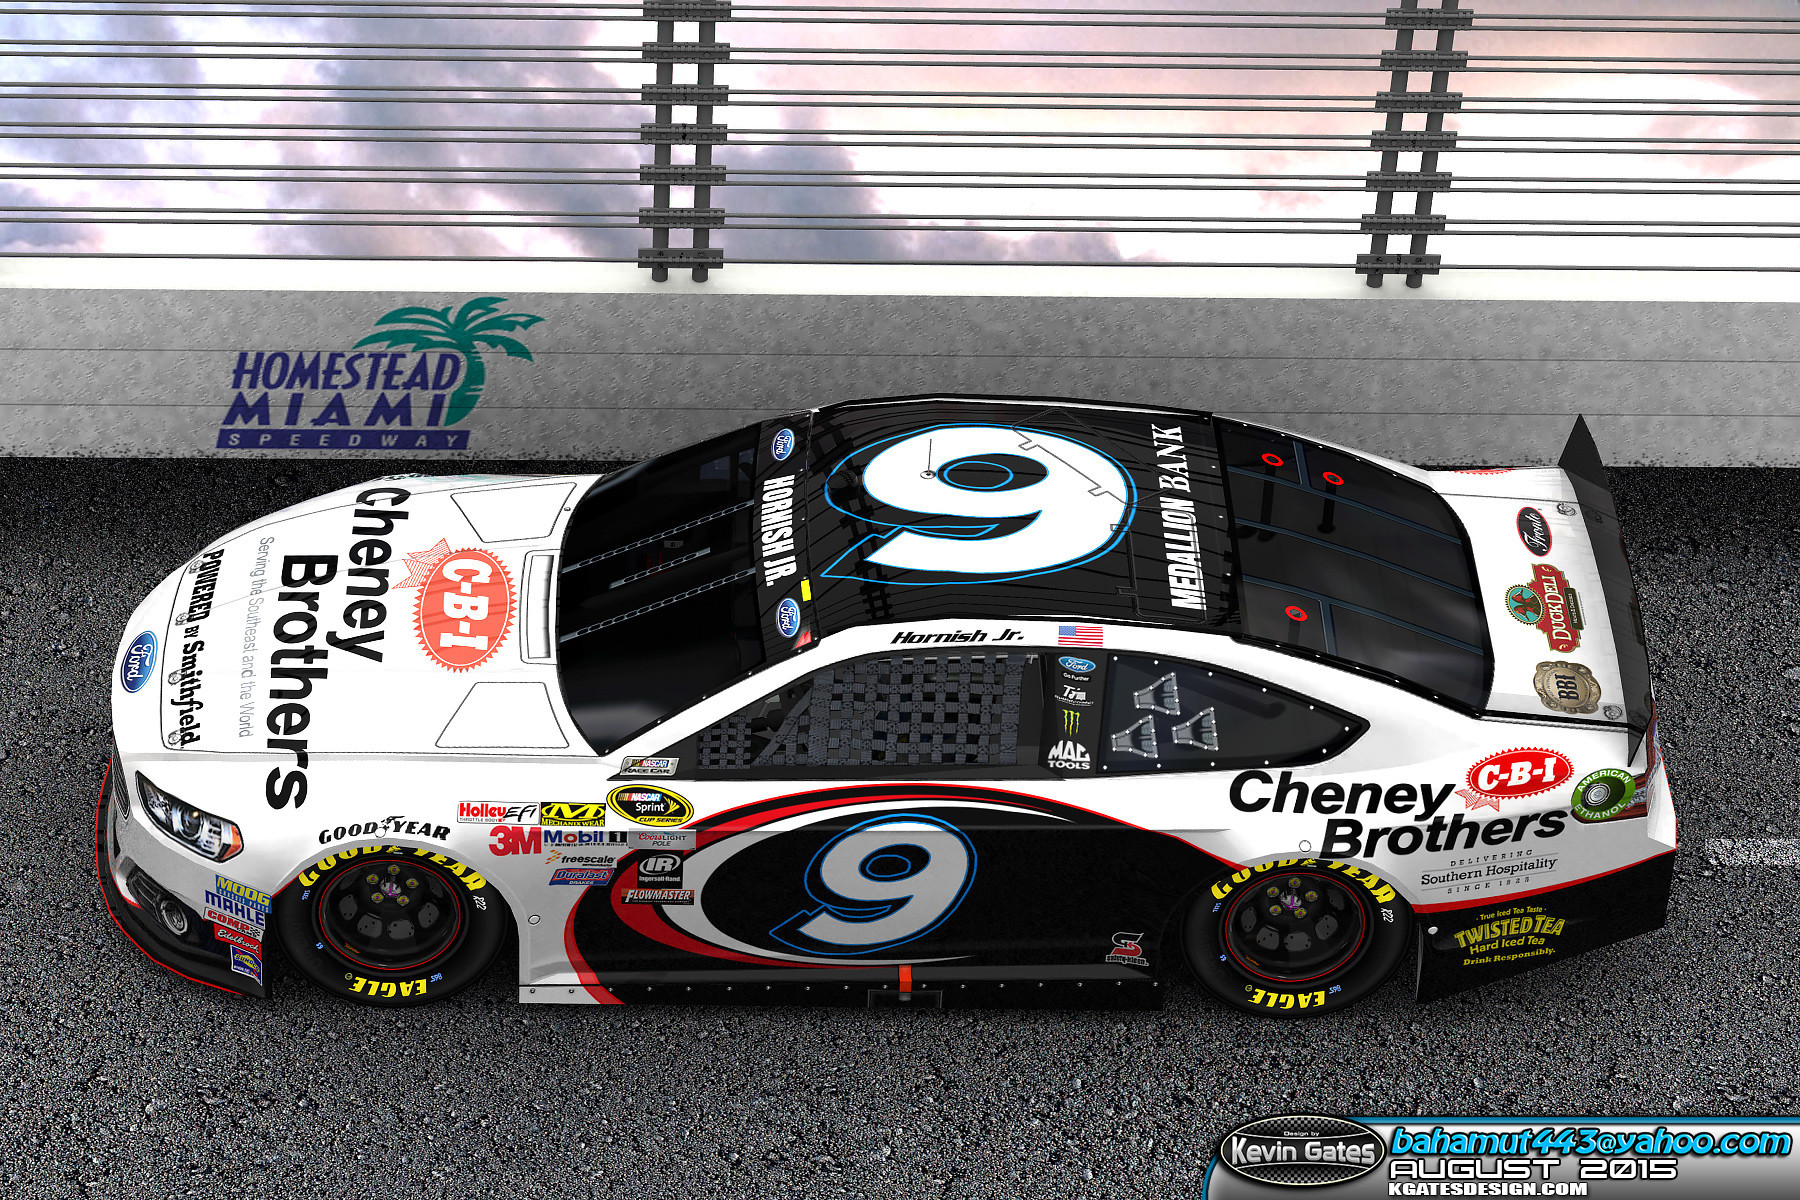 Original Autodesk 3DS Max Daytona track render of the finalized 2015 #9 Cheney Brothers, Inc. Ford Fusion driven by NASCAR Sprint Cup Series driver Sam Hornish Jr. of Richard Petty Motorsports